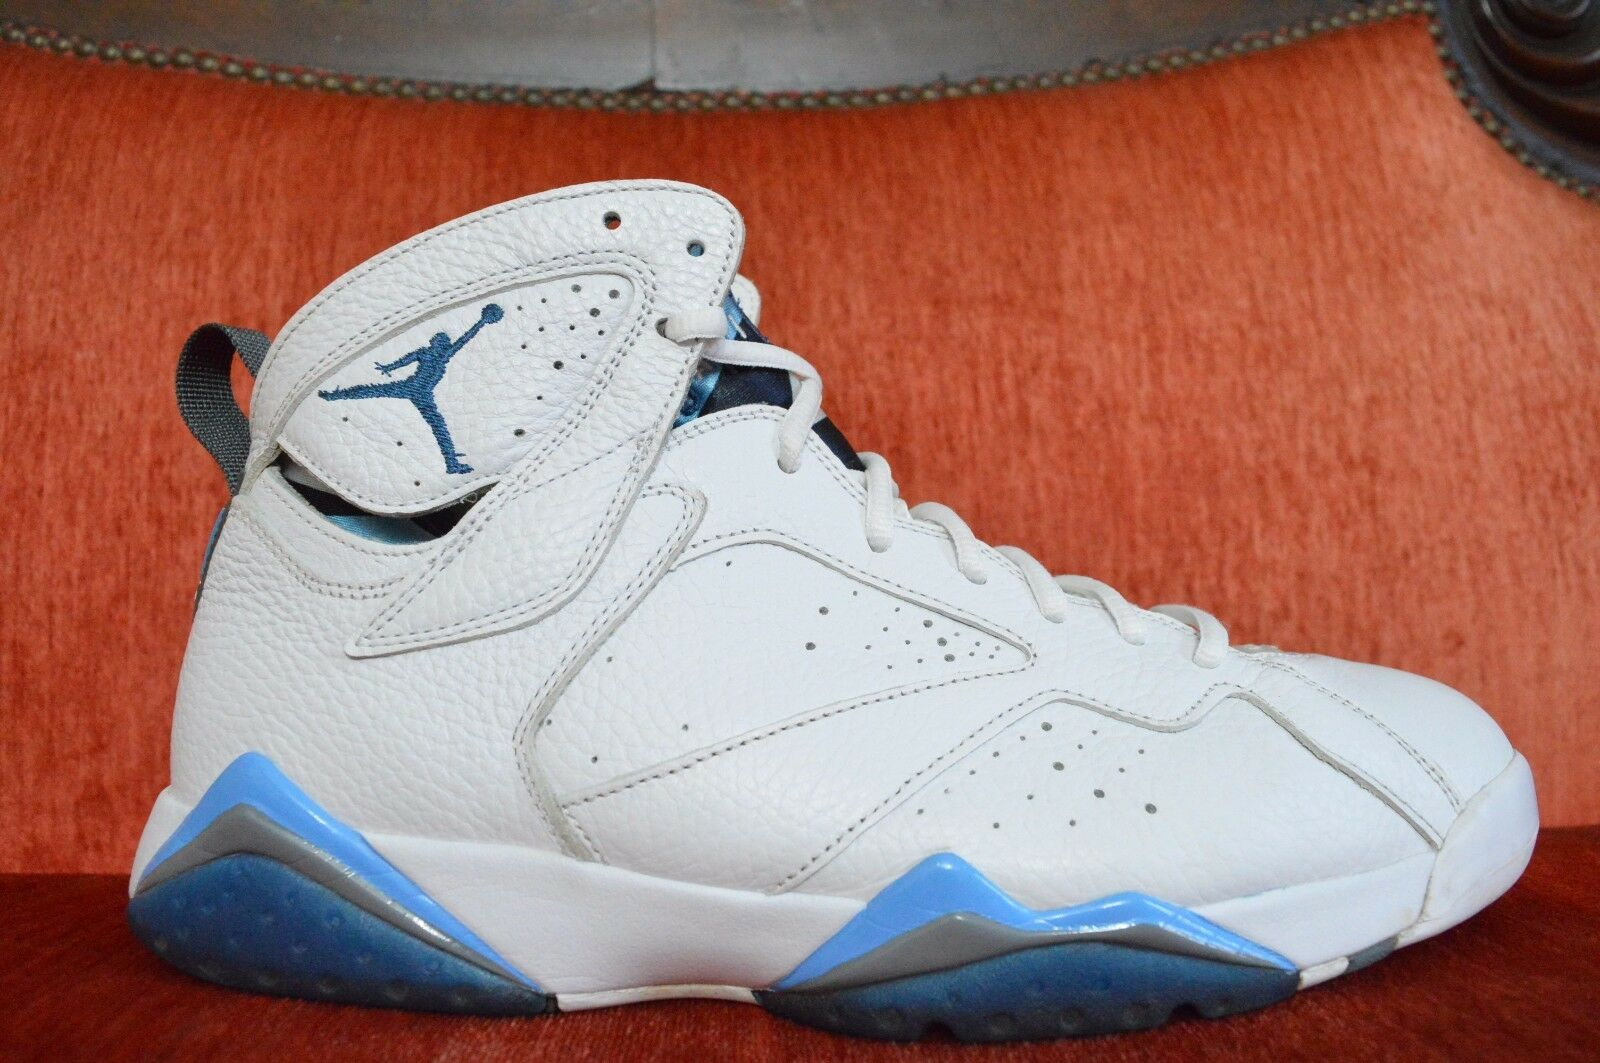 NIKE AIR JORDAN 7 RETRO 304775-107 WHITE-FRENCH blueE-UNIVERSITY blueE SIZE 11.5